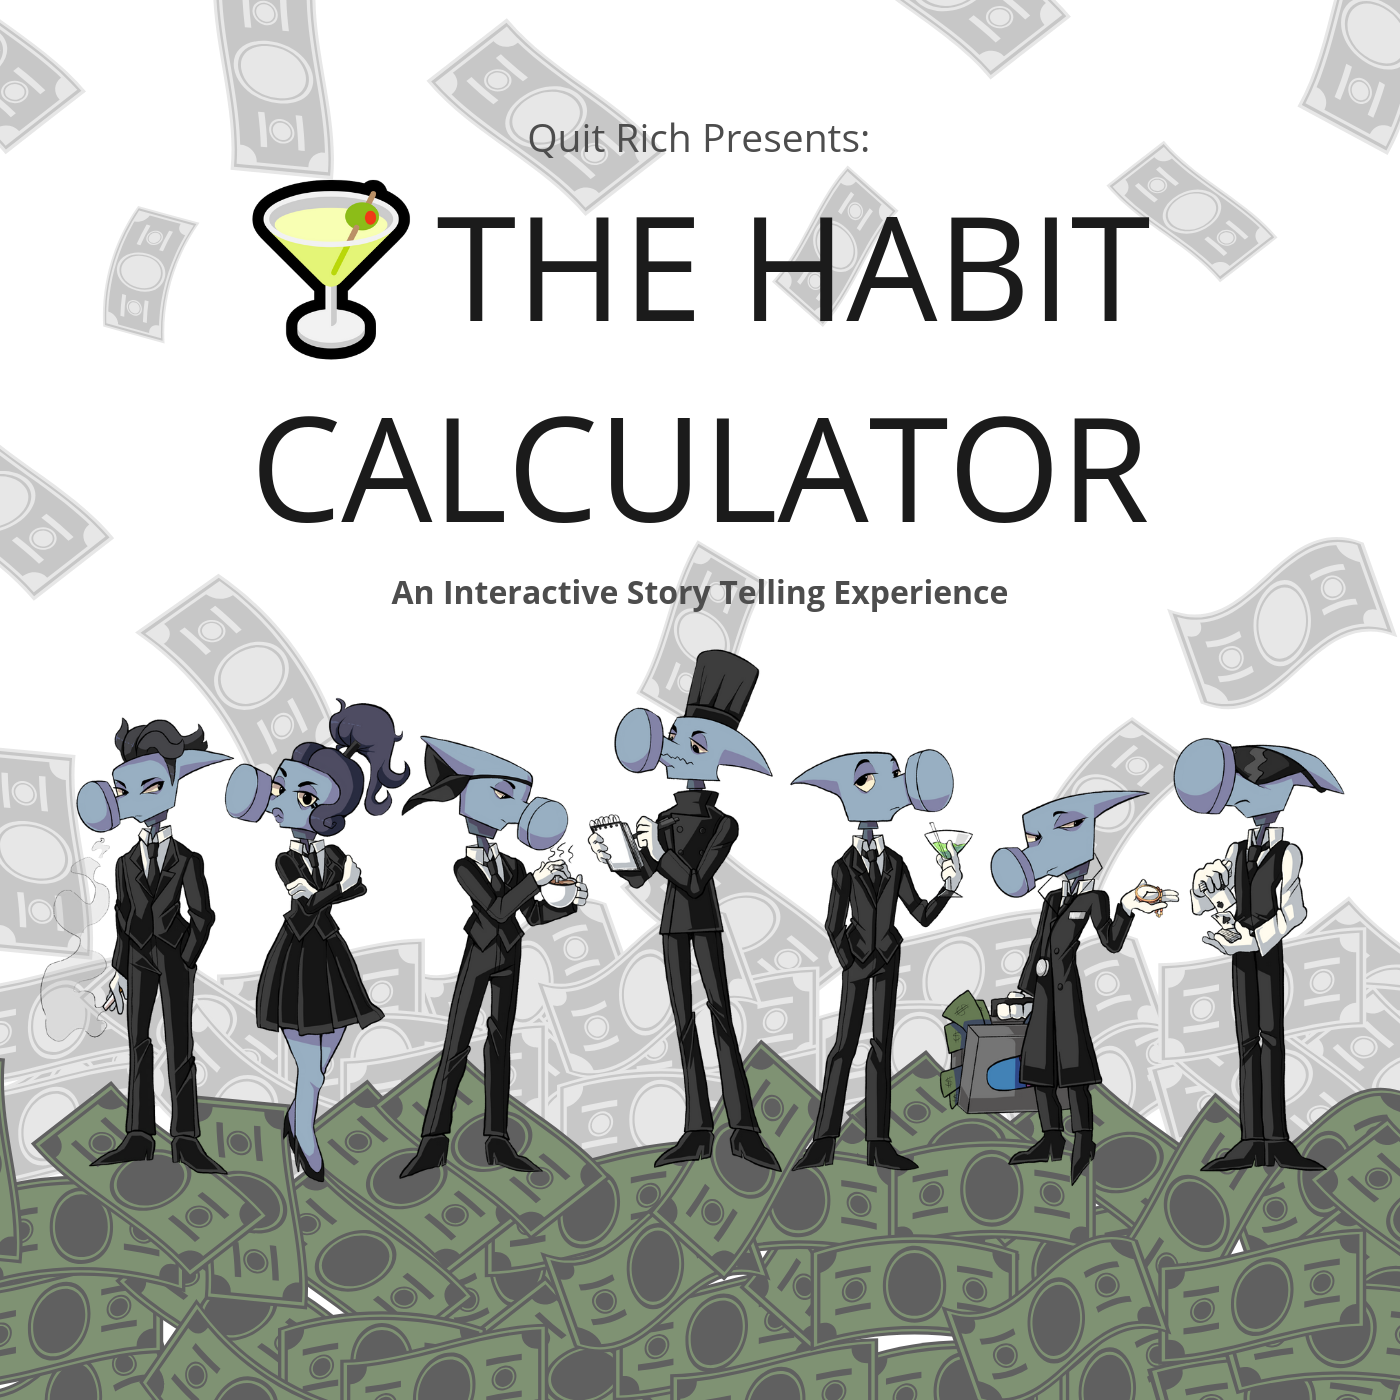 The Habit Calculator